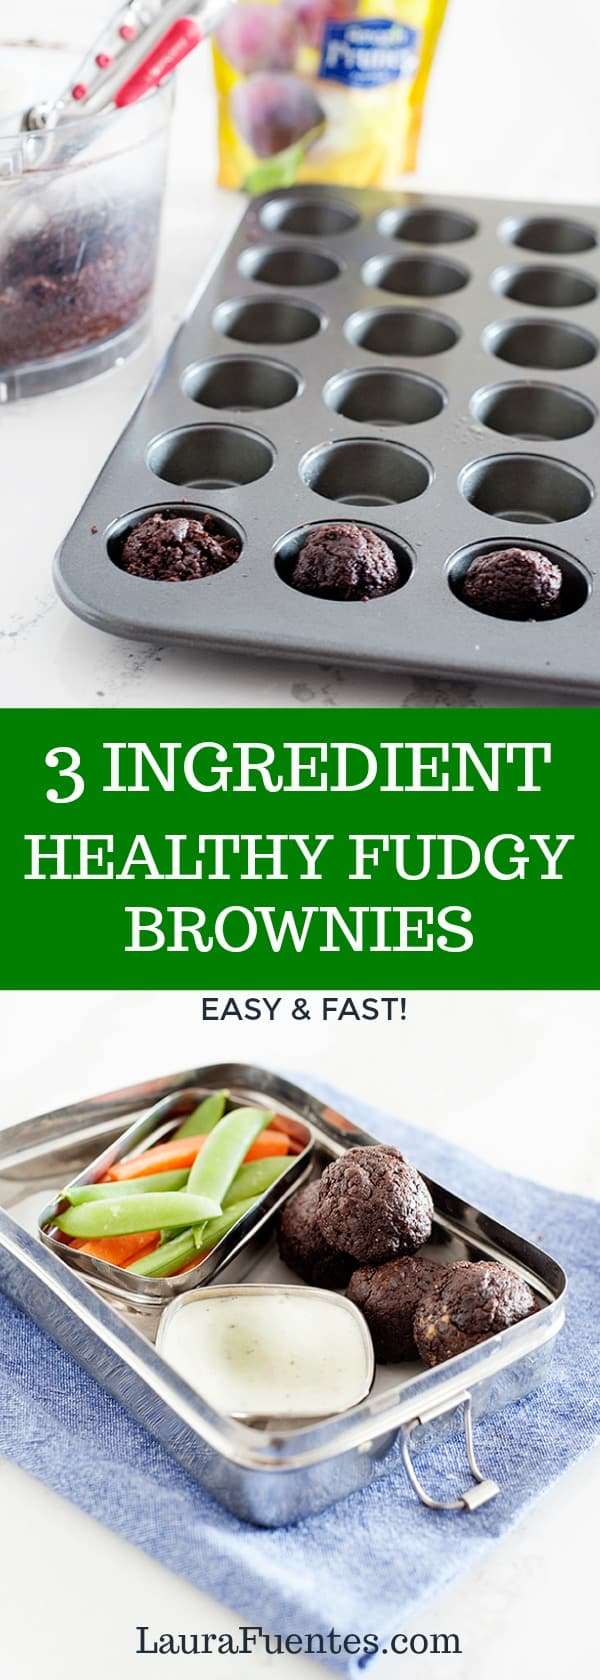 these 3 ingredient healthy fudgy brownies have no added sugars and are a terrific treat or high fiber snack for the lunchbox